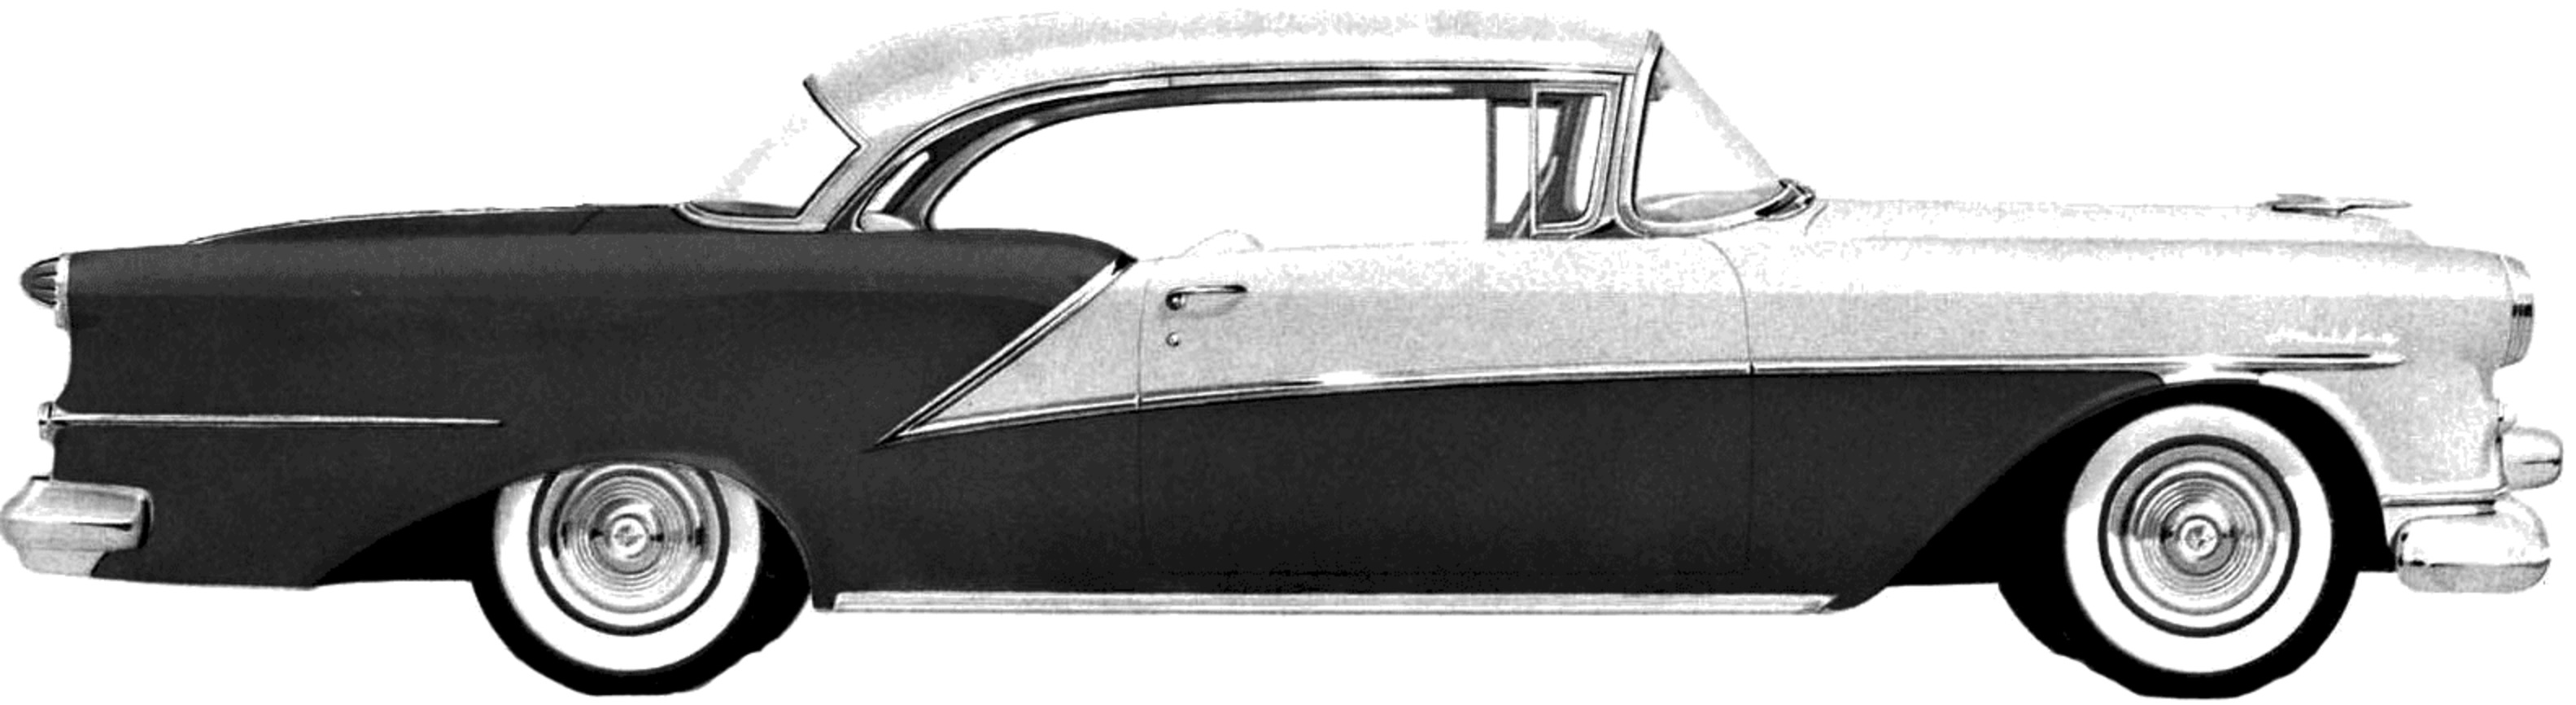 Oldsmobile 98 Holiday Coupe - cars catalog, specs, features, photos, videos,